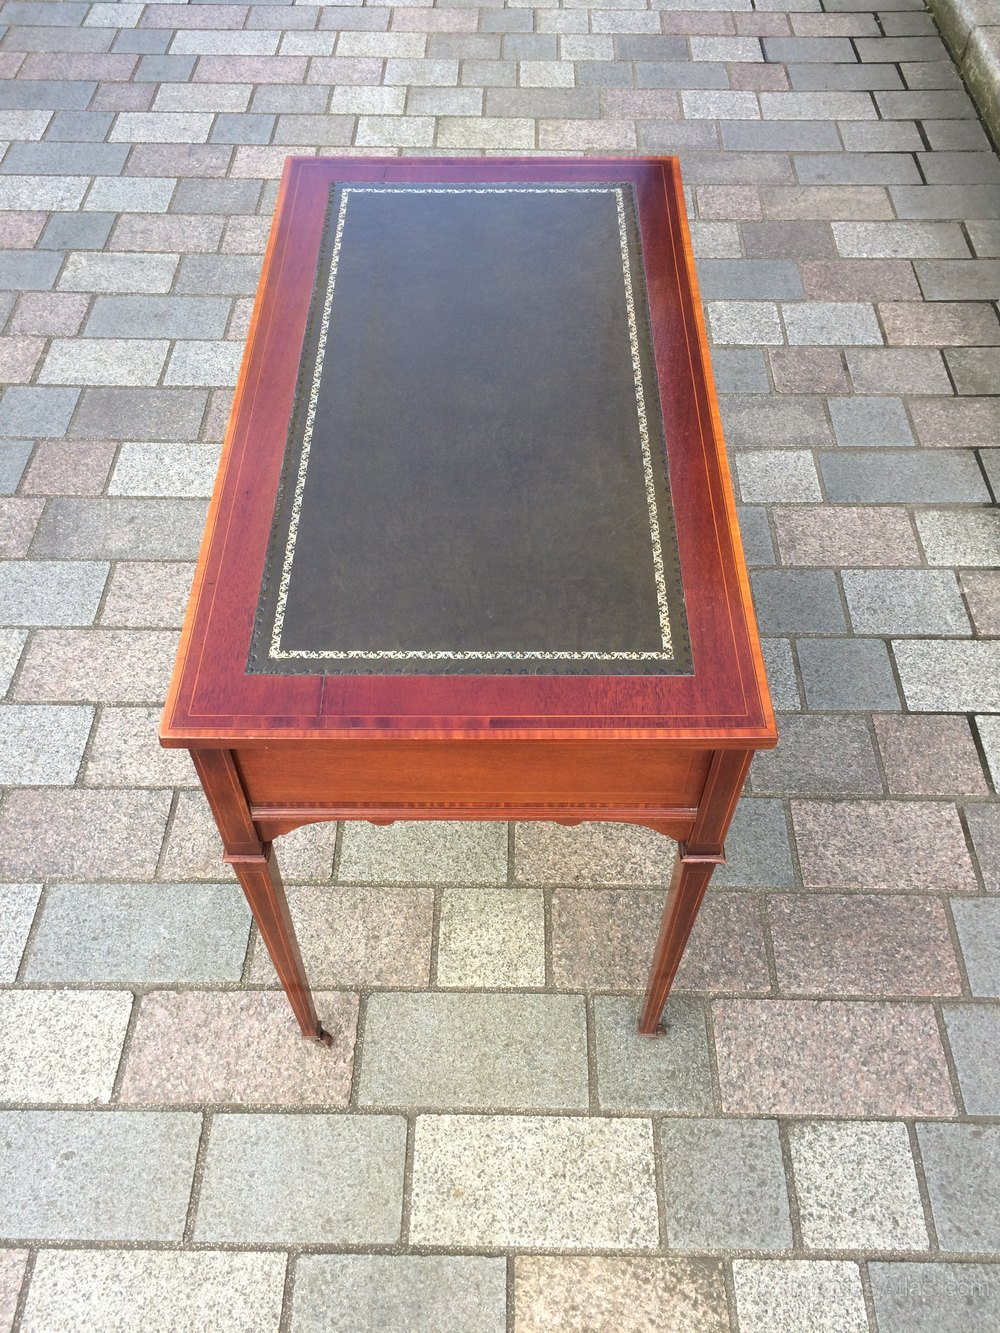 Edwardian Inlaid Mahogany Writing Desk Antiques Atlas